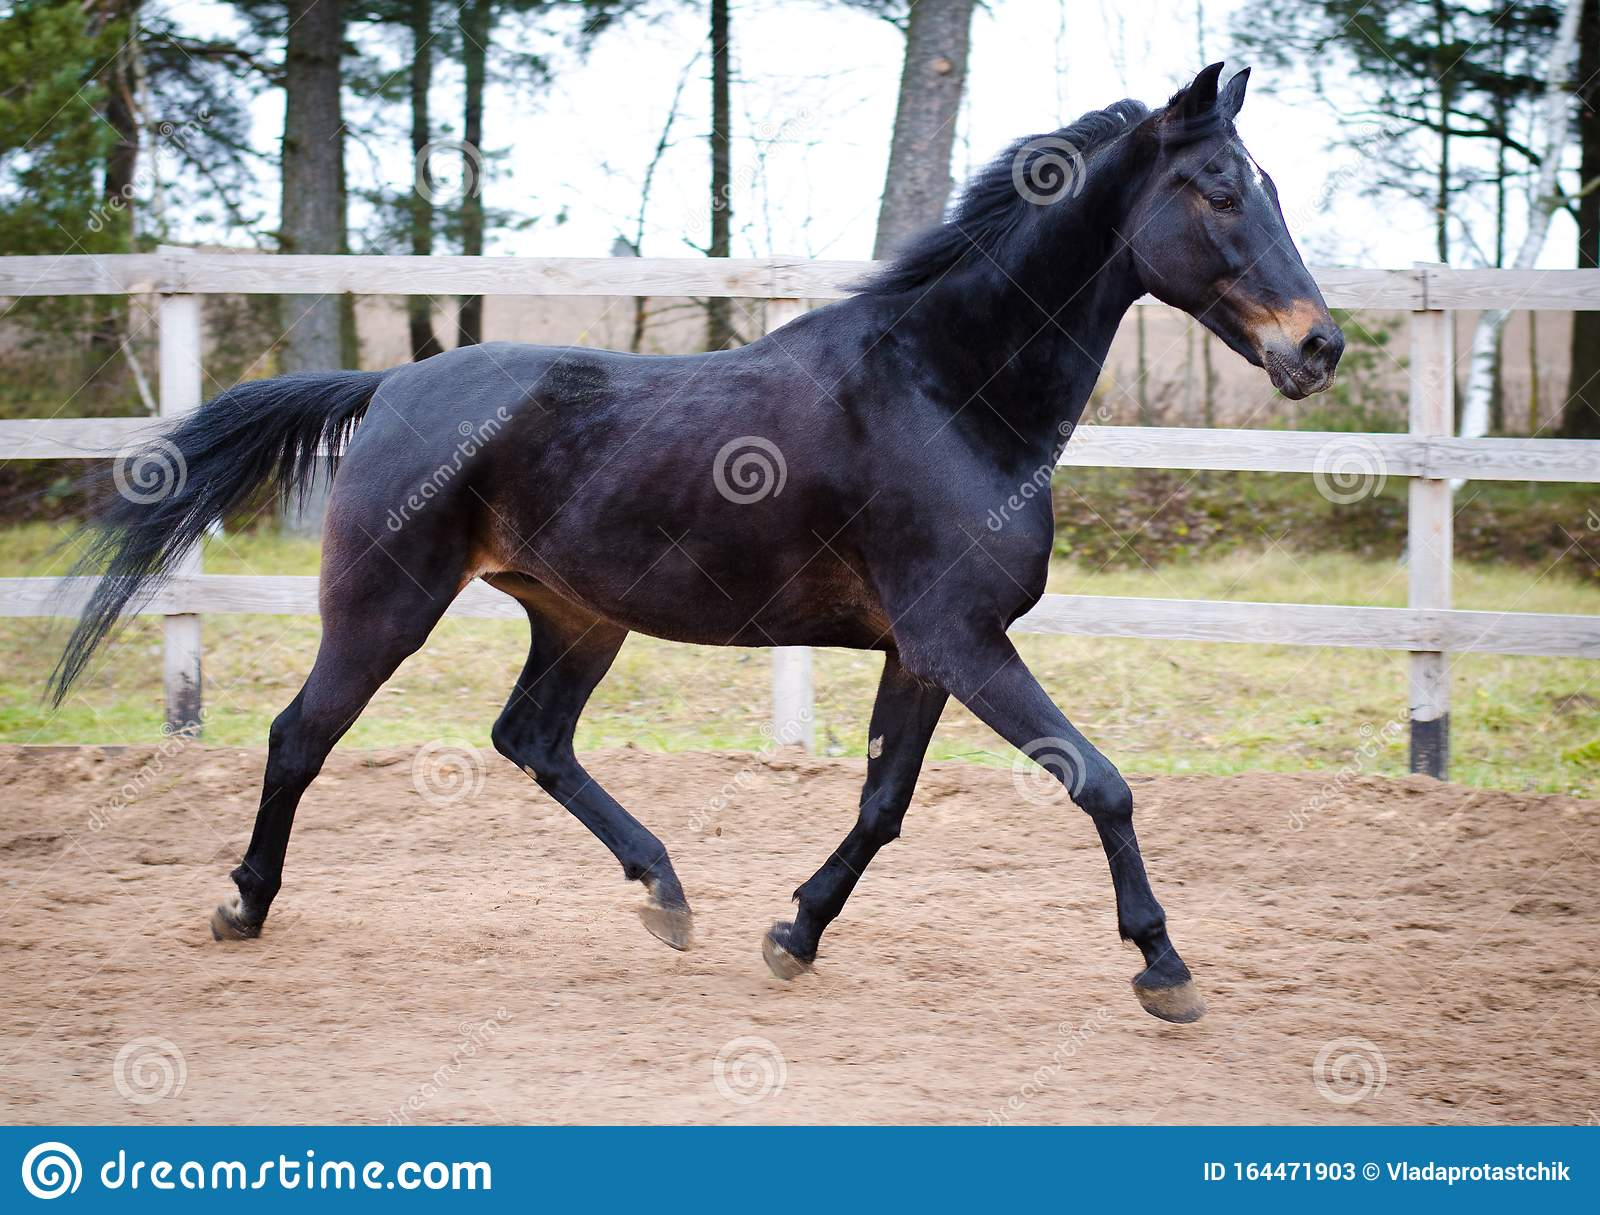 Old Dark Bay Eventing Gelding Horse Trotting In Paddock Stock Image Image Of Freedom Farm 164471903